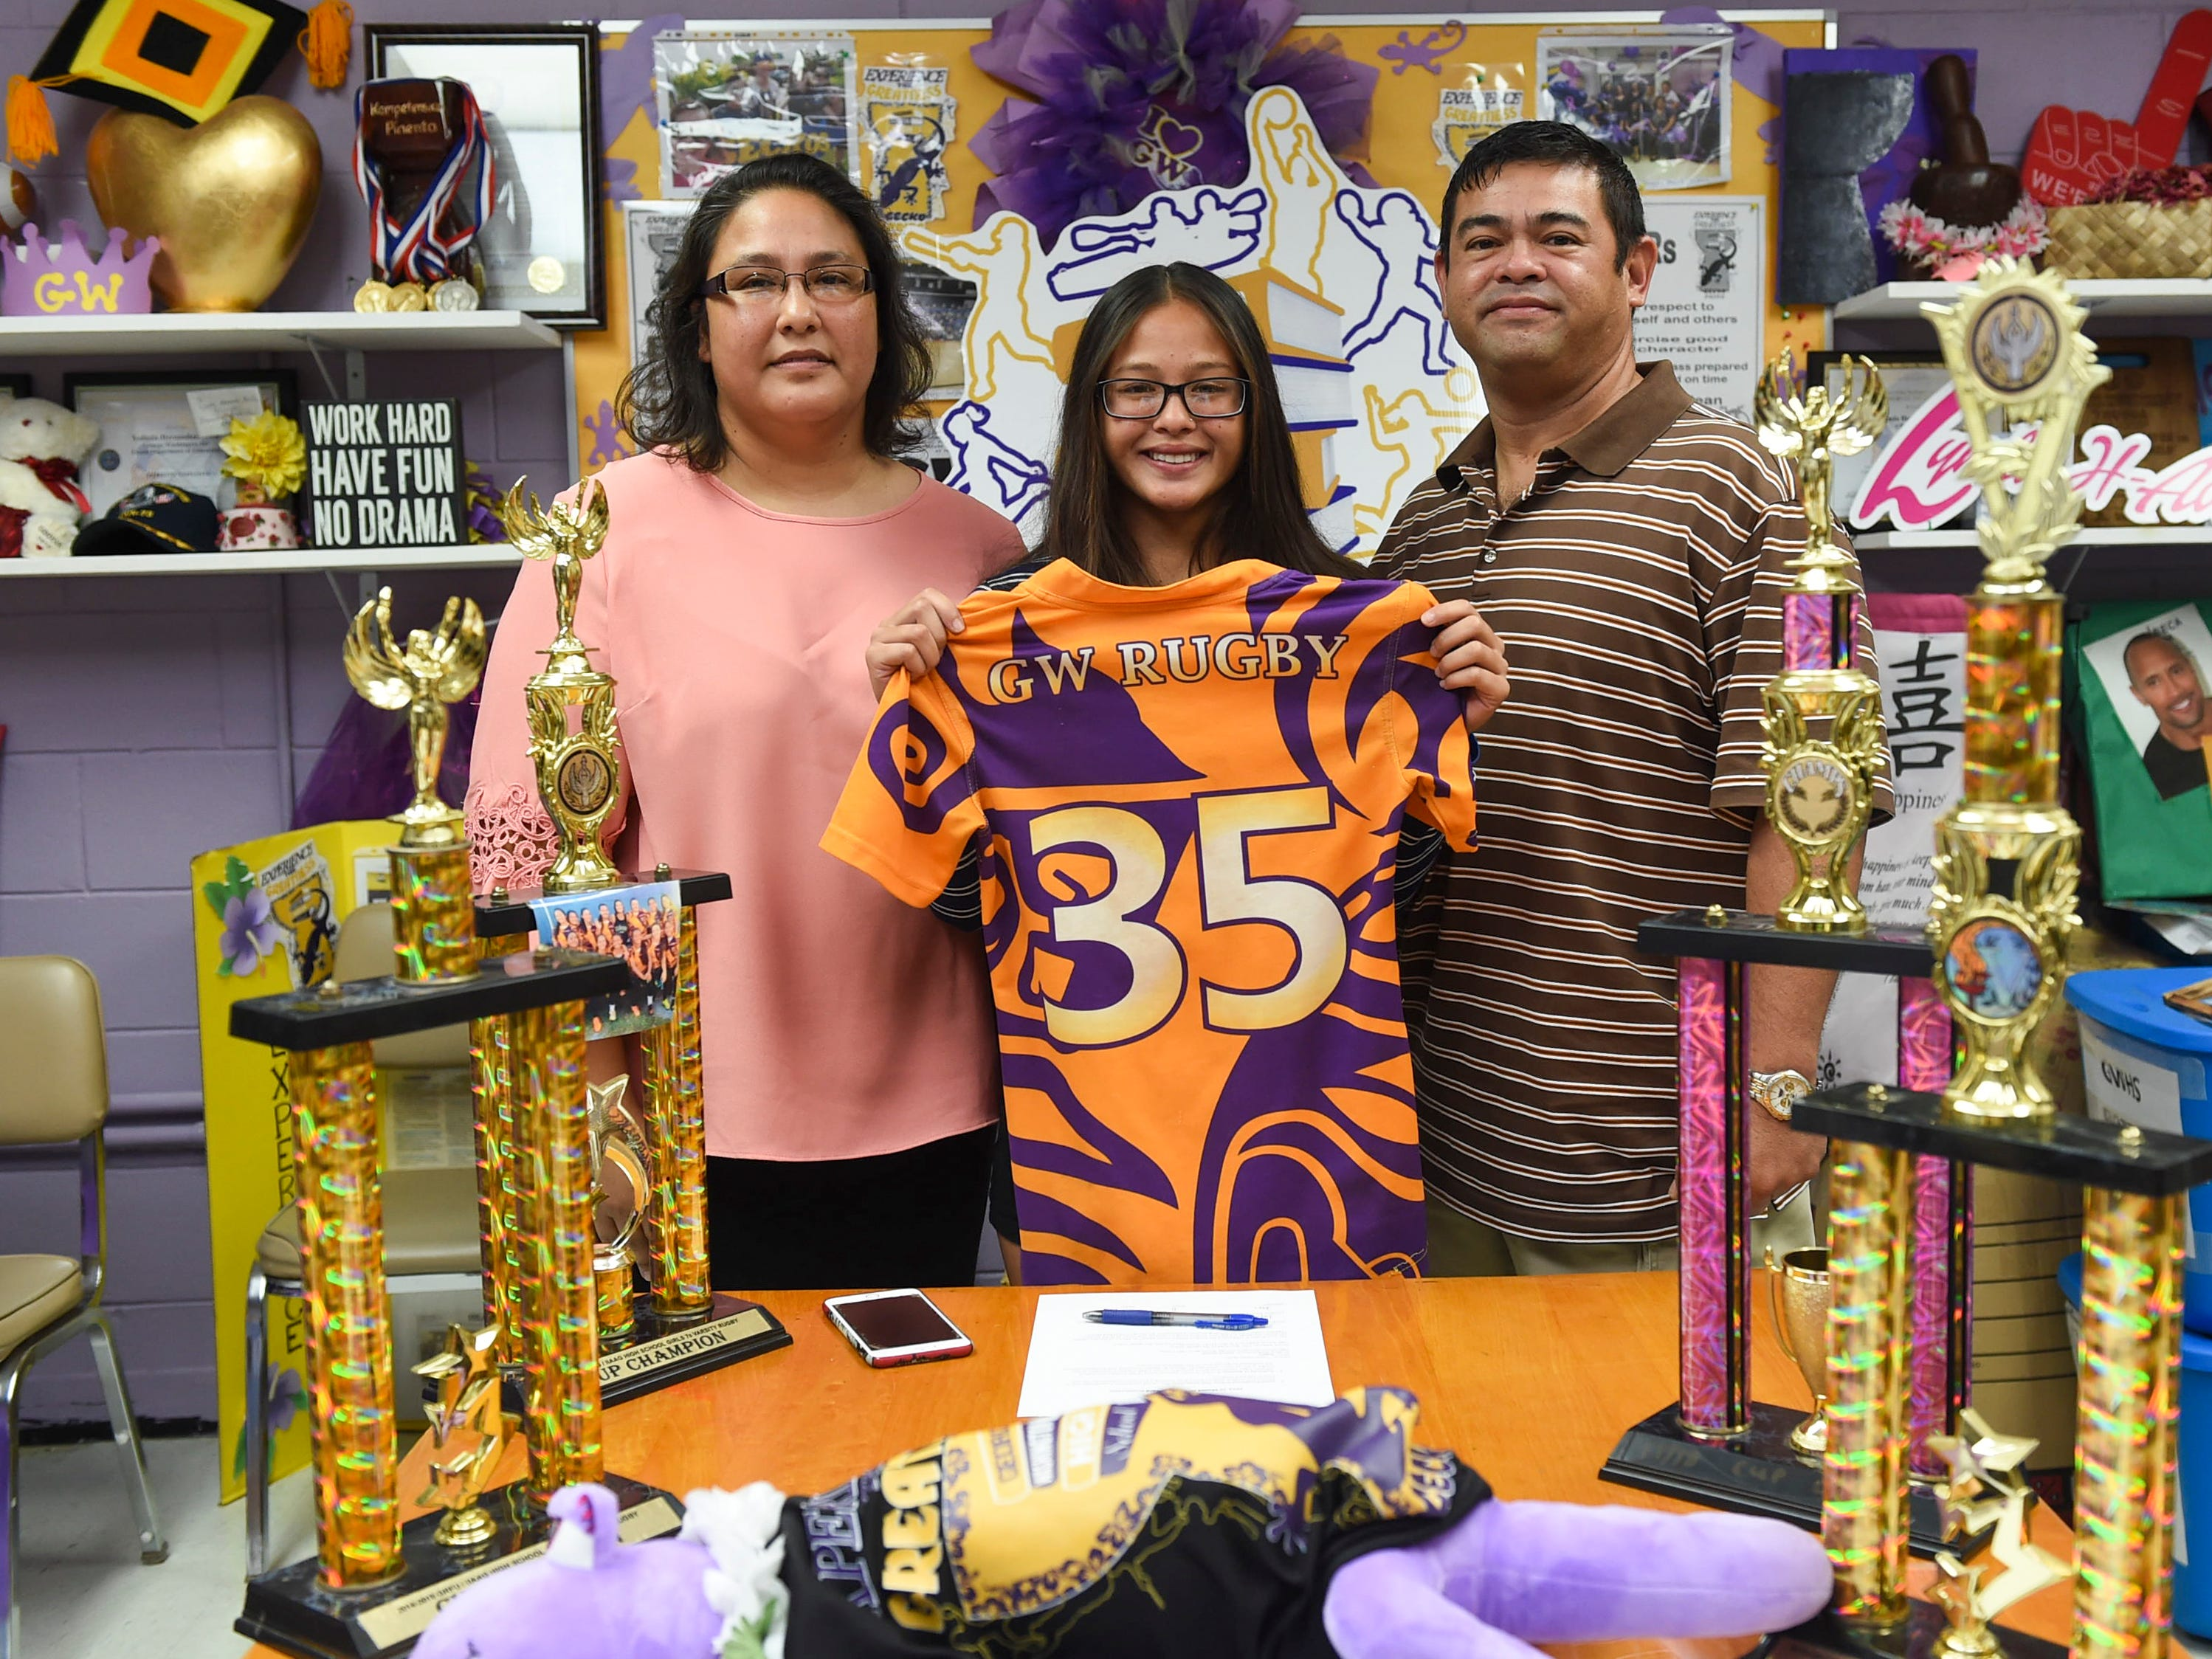 George Washington High School girls' rugby star, Jalana Garcia, 18, beside her parents Ava and Jeffrey Garcia, displays her Geckos team jersey after signing a letter of intent with Mount St. Mary's University, at the GWHS main office, Jan. 11, 2019.